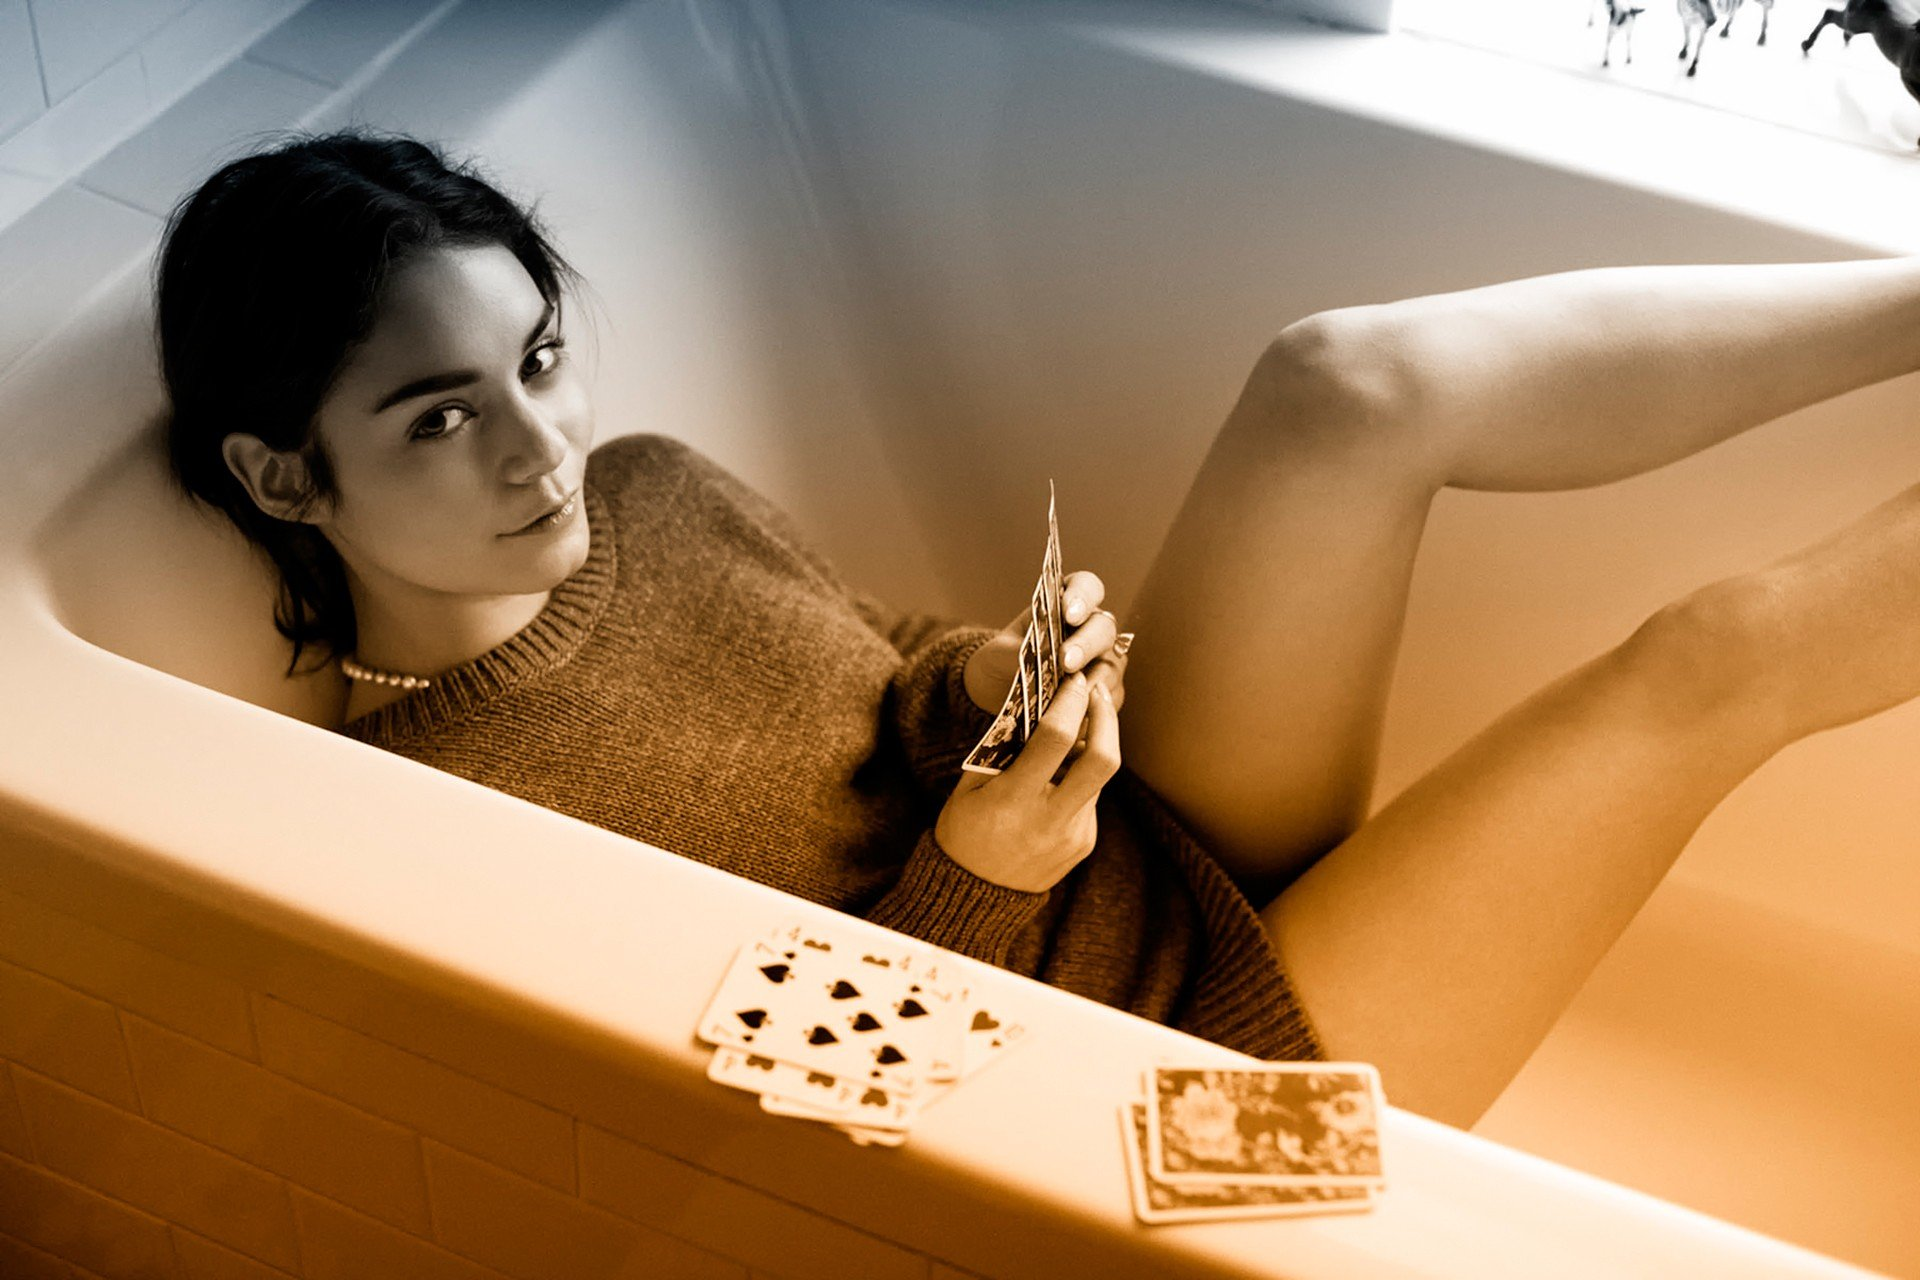 Vanessa Hudgens Gradient Playing Cards Bathtub Sweater Hd Wallpapers Desktop And Mobile Images Photos